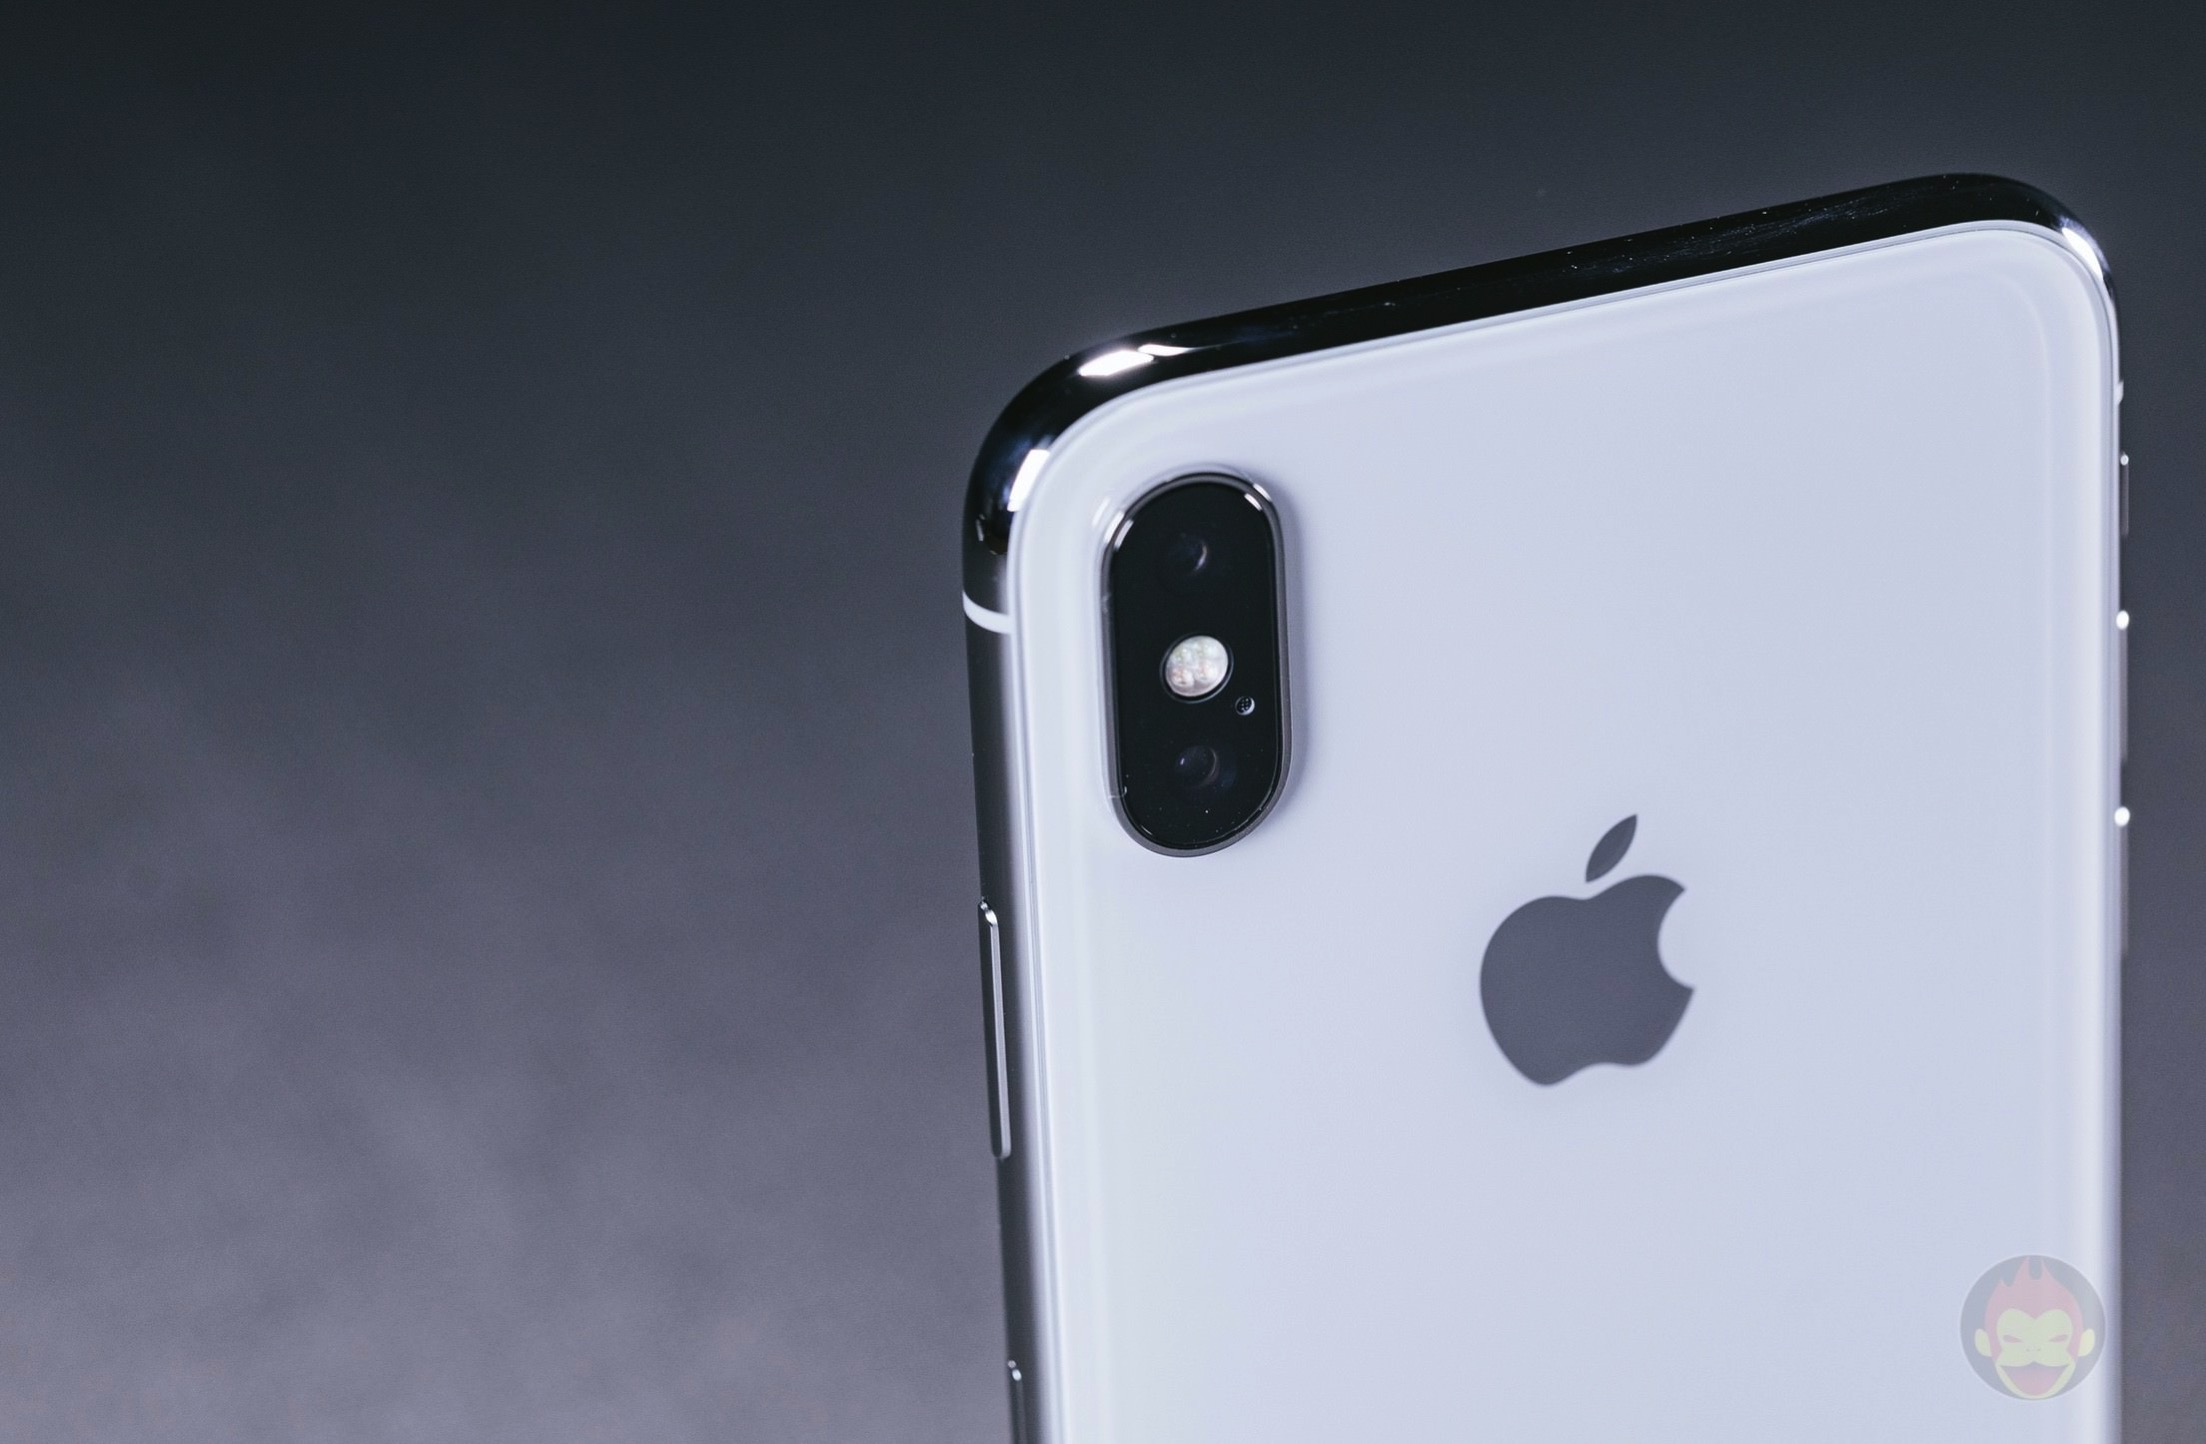 iPhone-X-Silver-Review-002.jpg